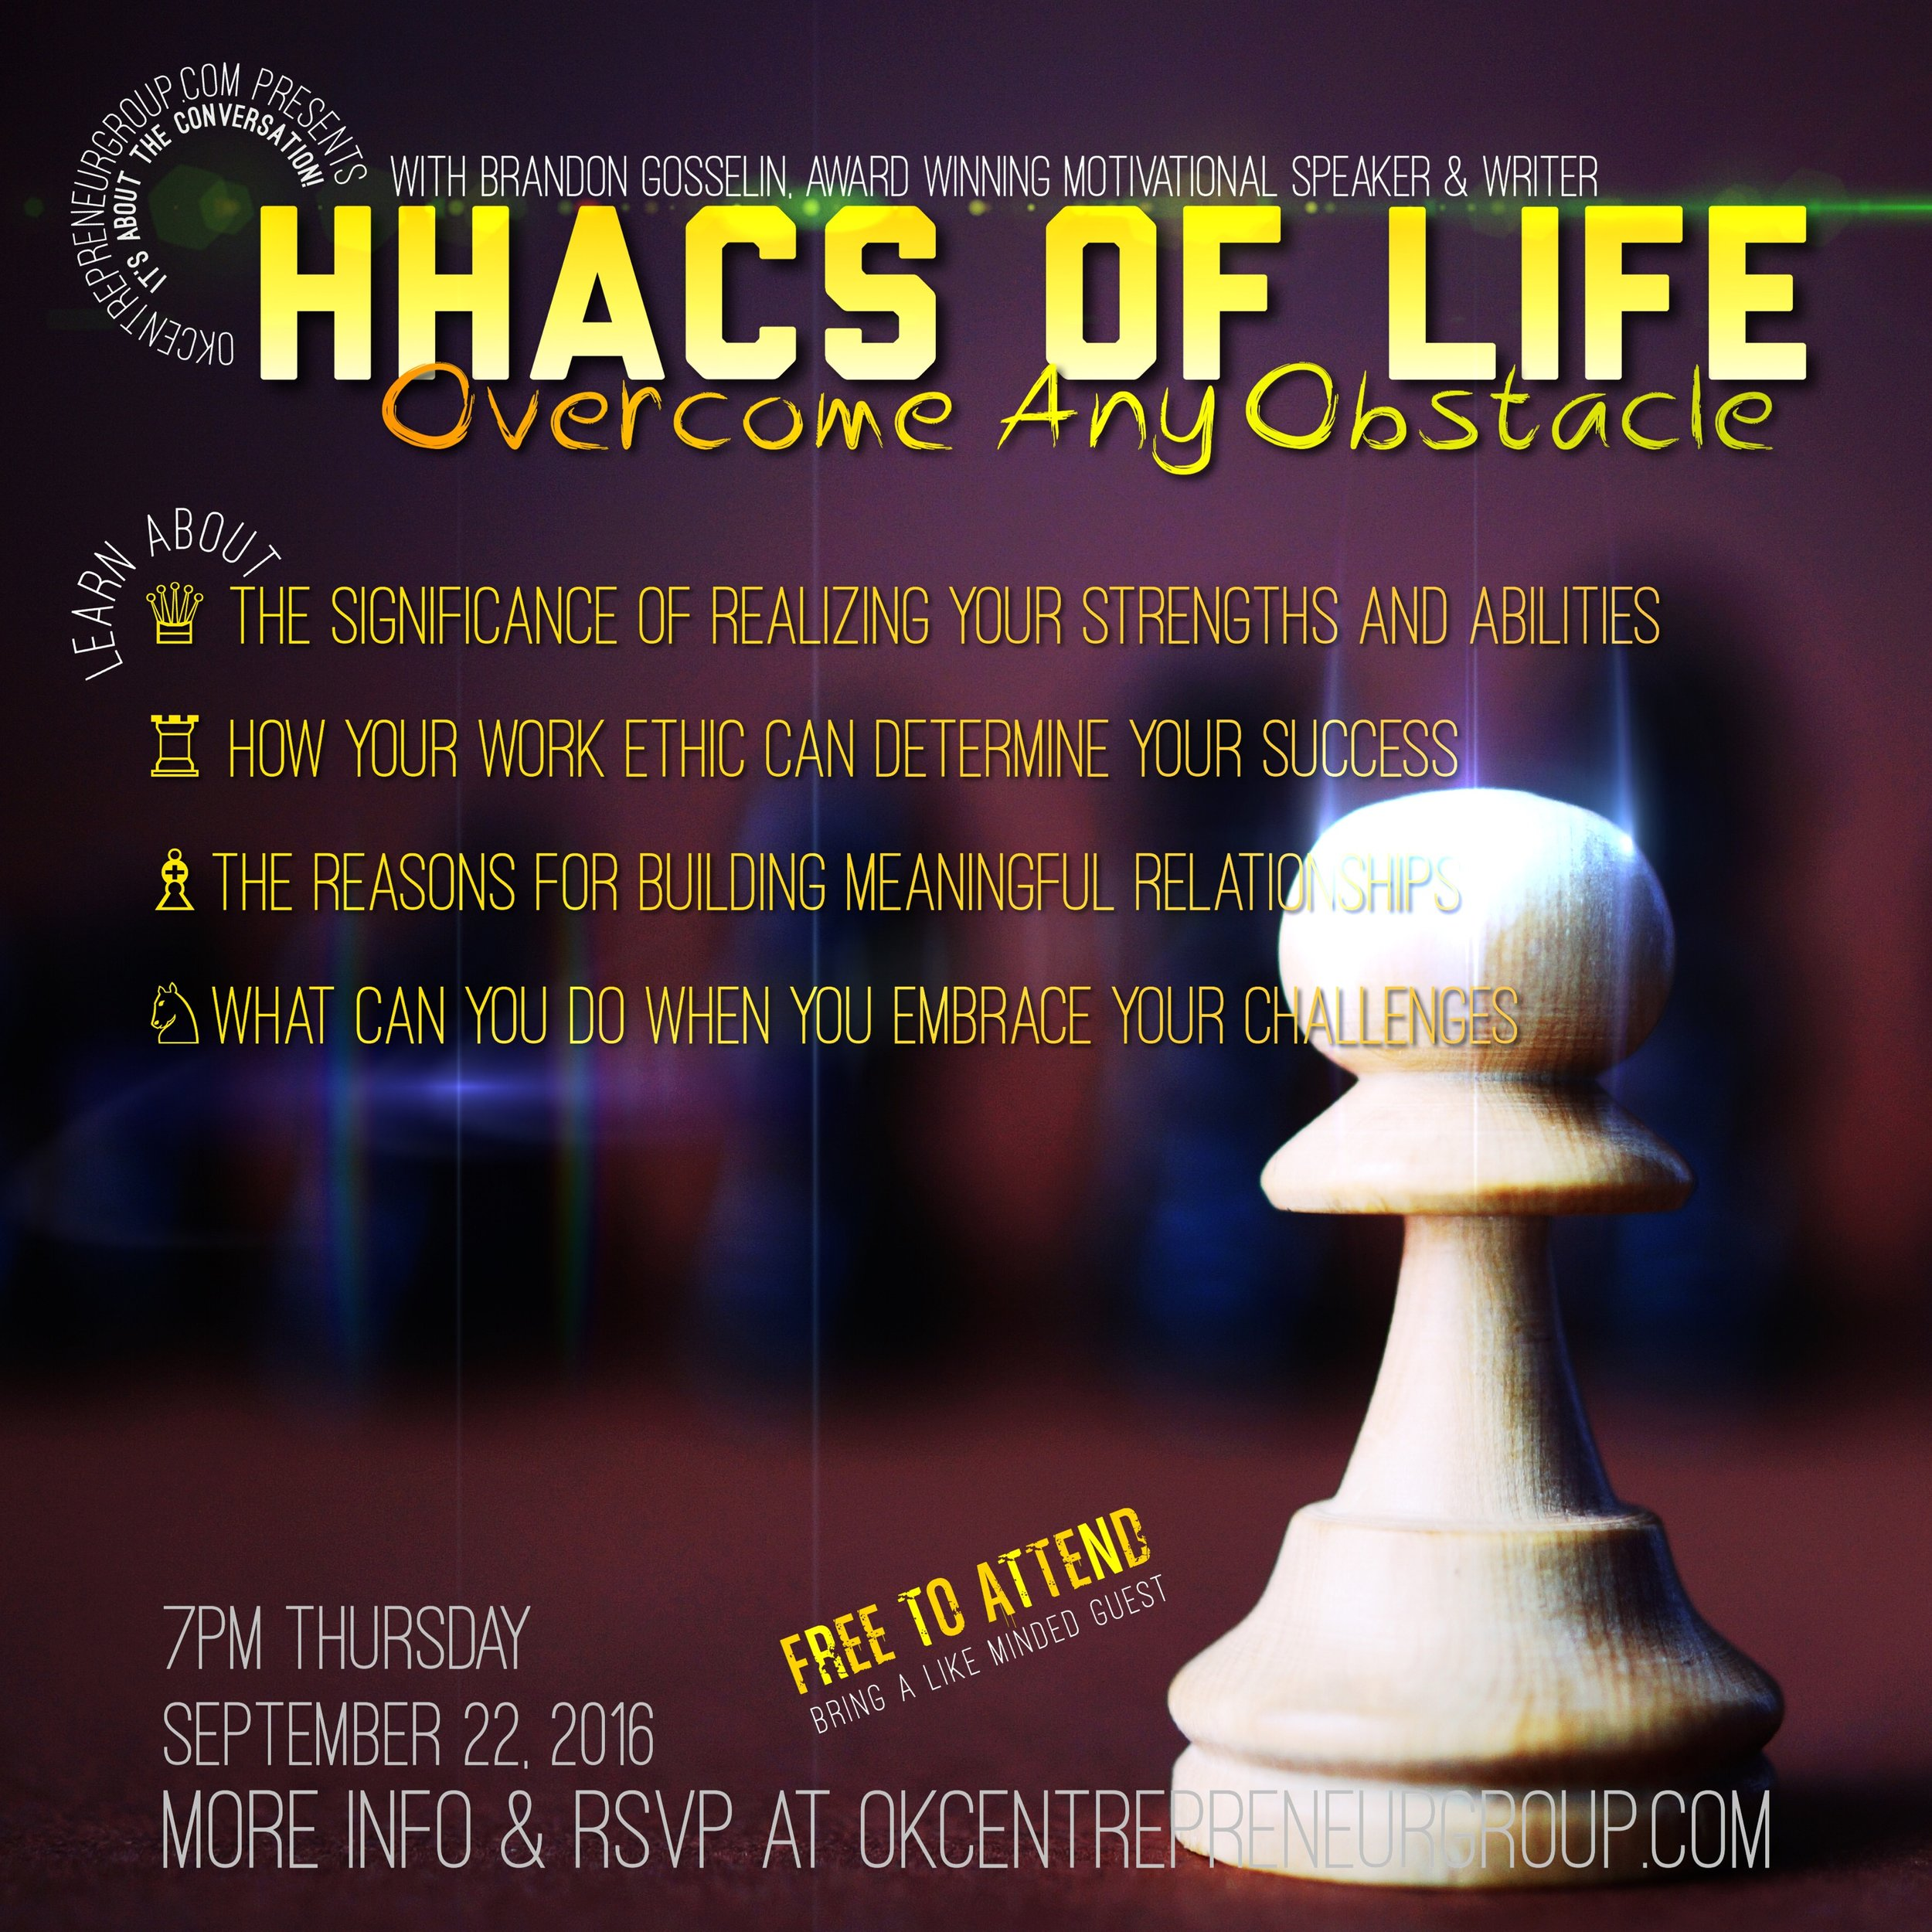 HHACs of Life Overcome Any Obstacle with Brandon Gosselin 1.jpg